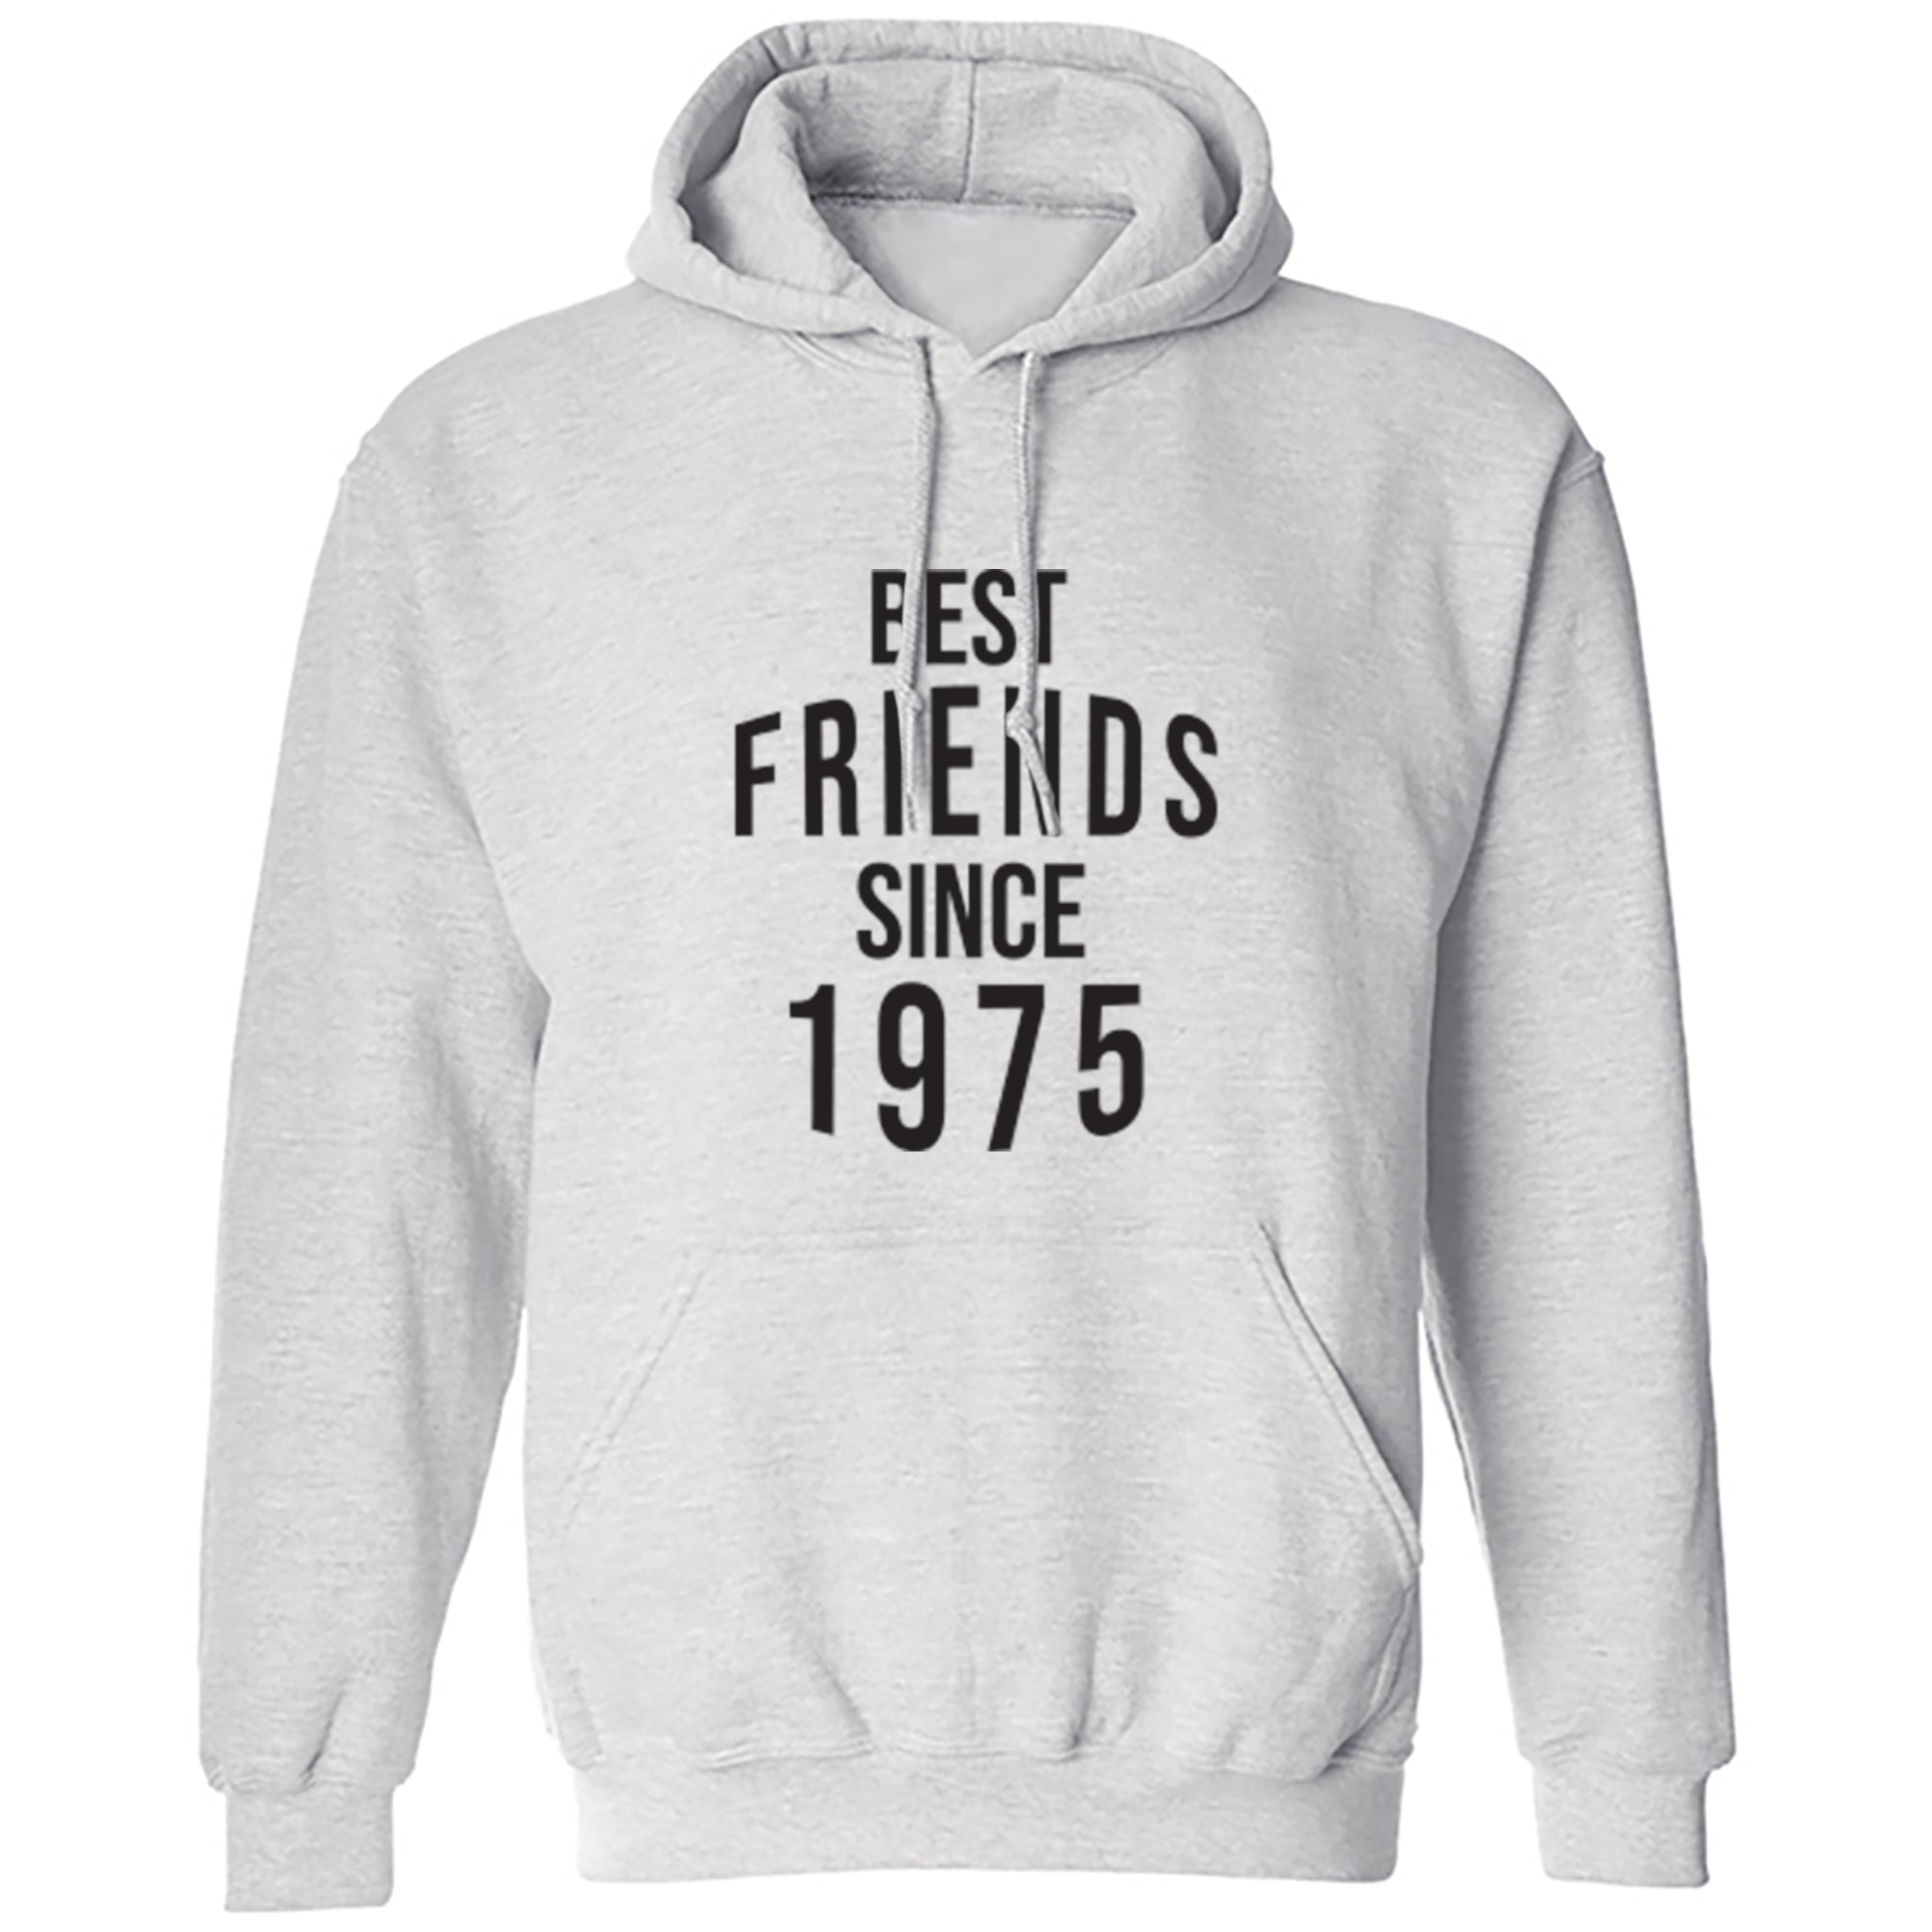 Best Friends Since 1975 Unisex Hoodie S0554 - Illustrated Identity Ltd.